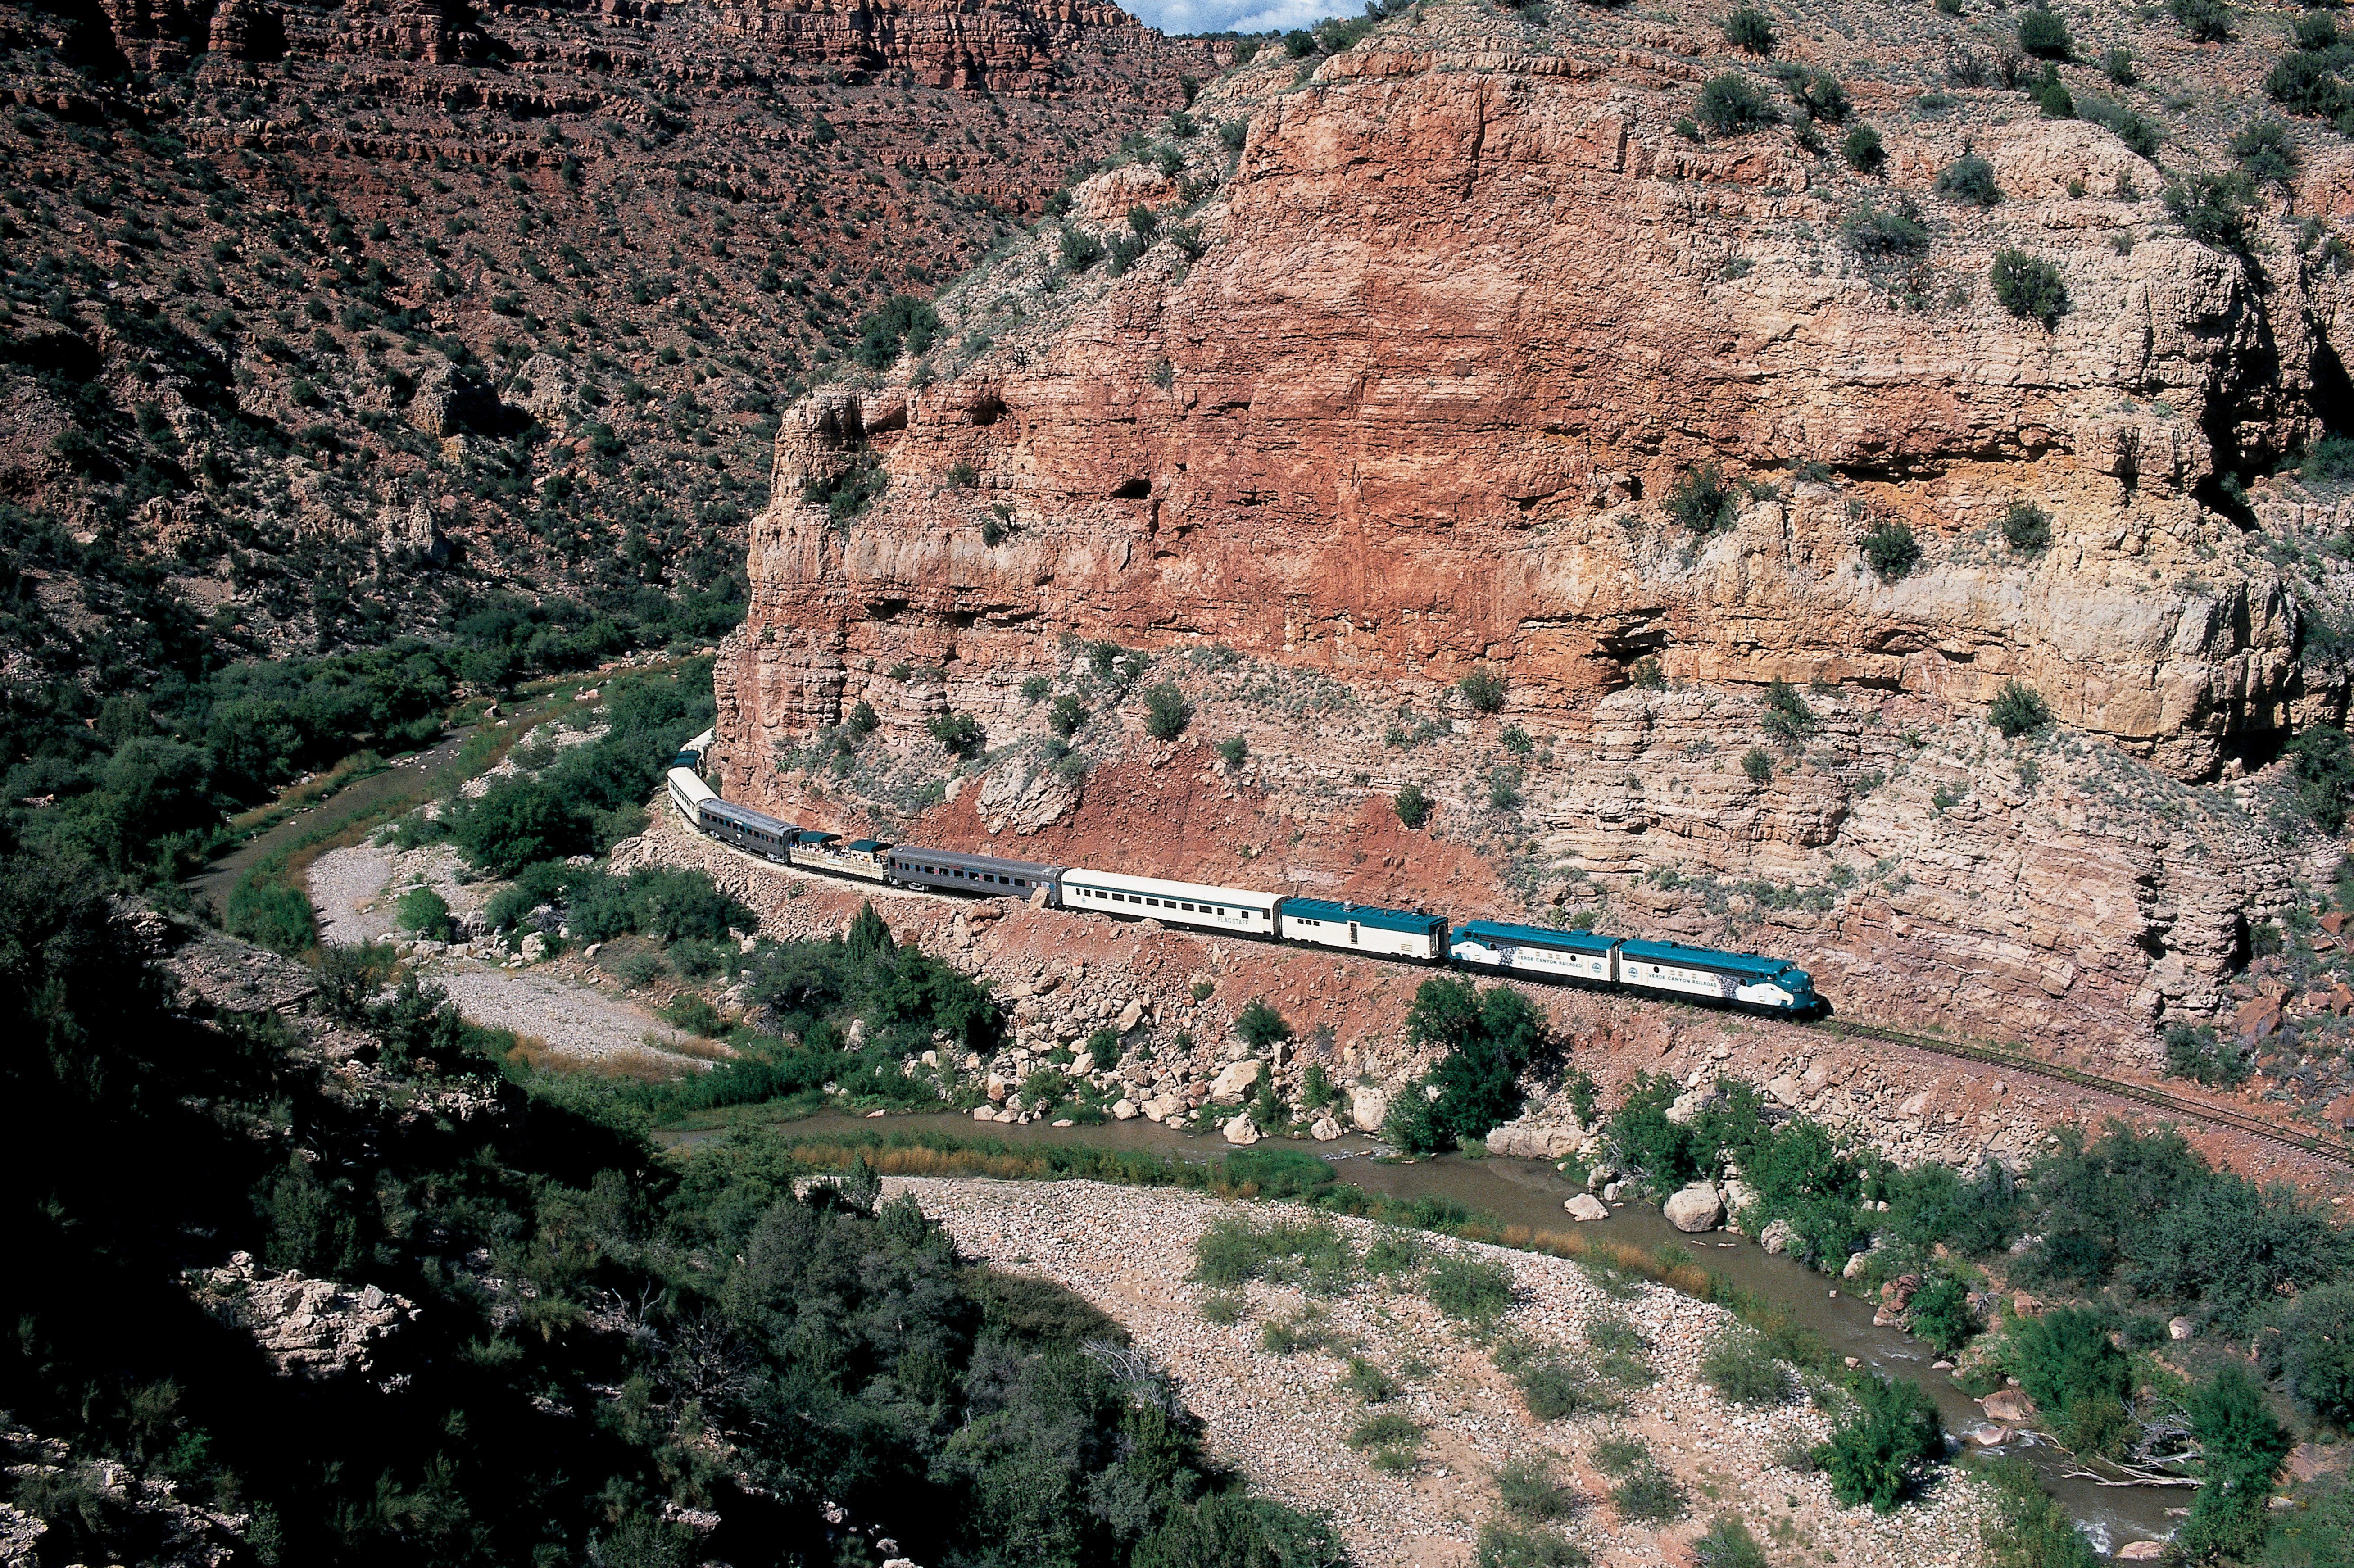 Distant Train above River with Red Rock